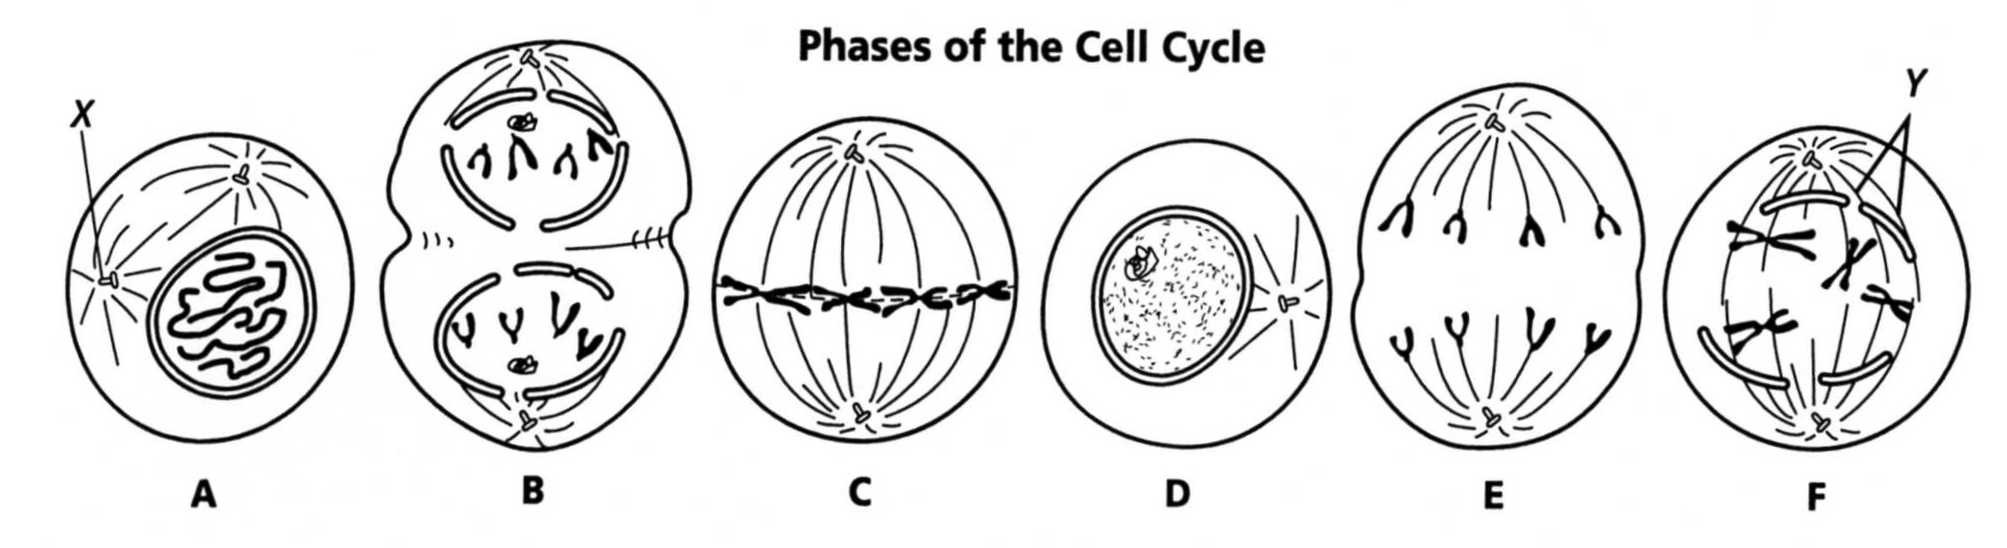 Phases Of The Cell Cycle Worksheet Answers Free Worksheets Library – Cell Cycle and Mitosis Worksheet